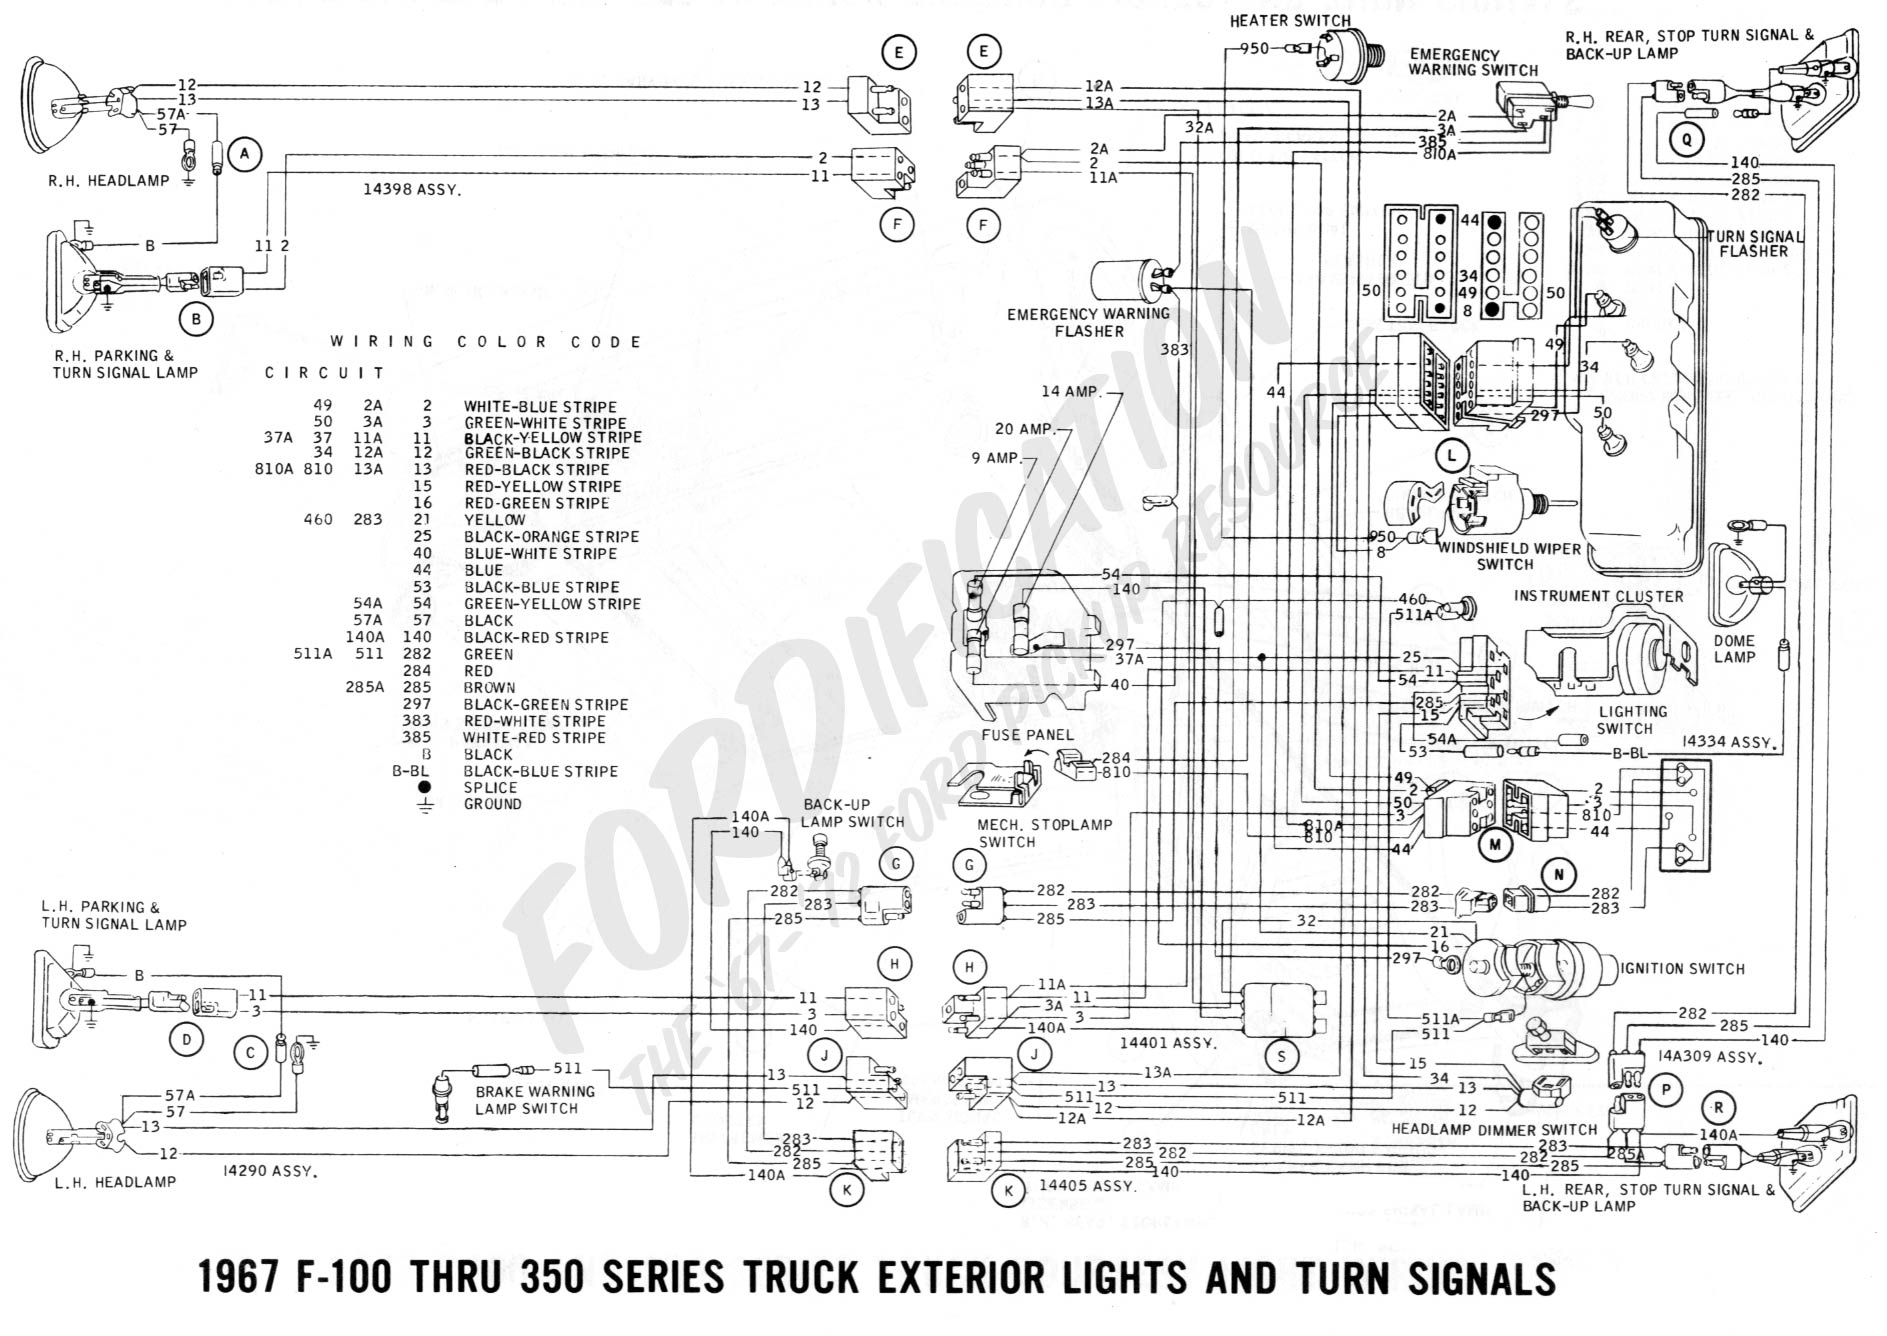 1971 vw beetle wiring diagram as well vw type 3 wiring diagram